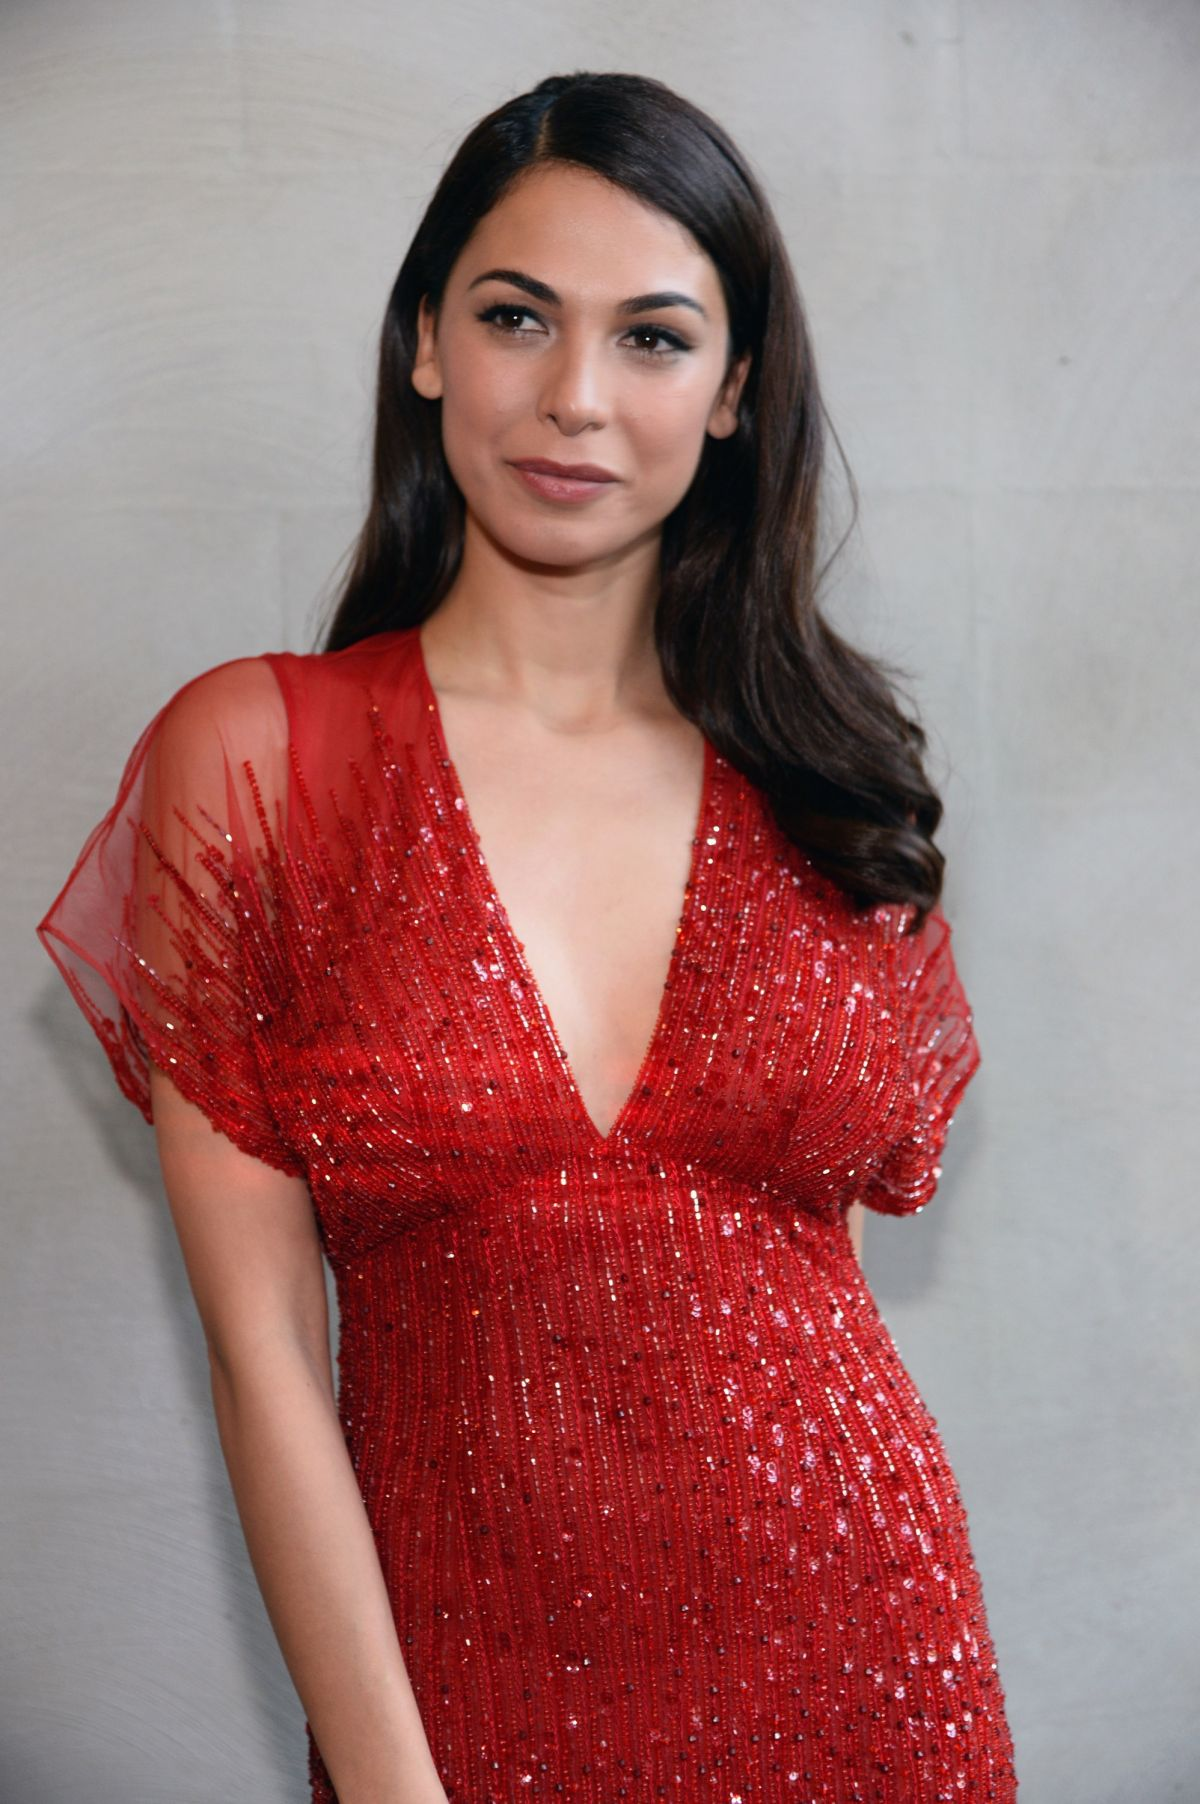 moran atias forum